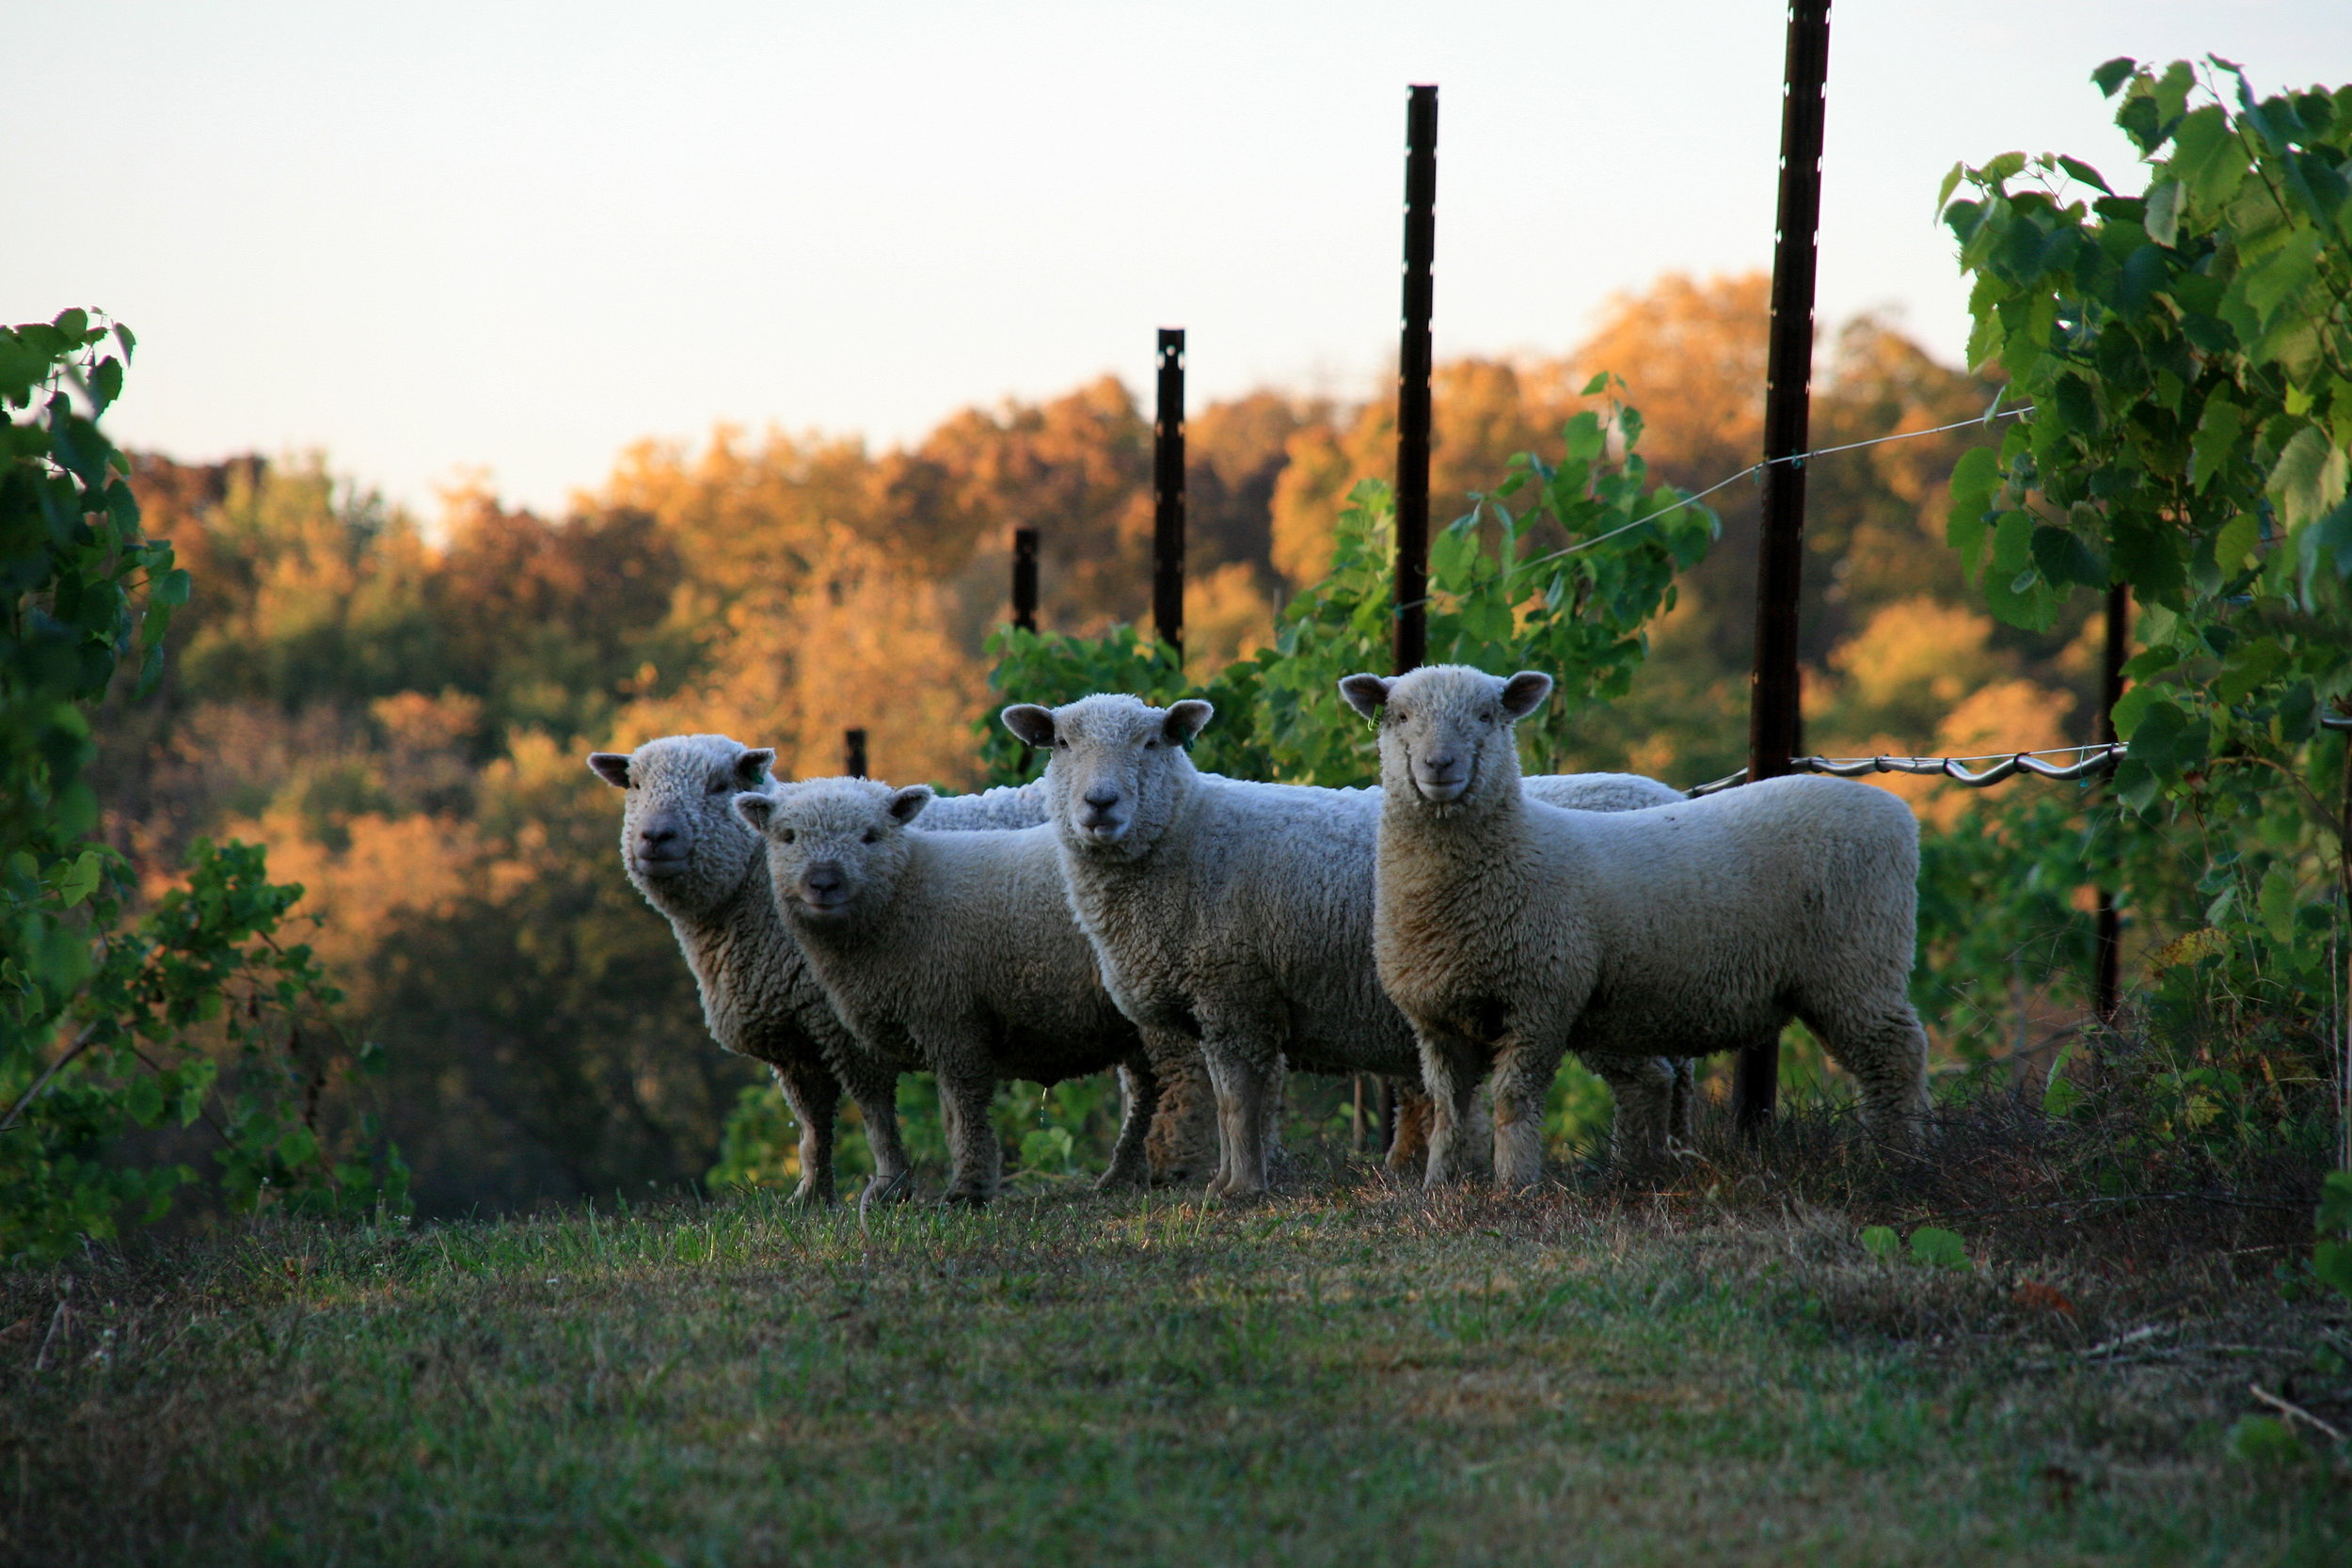 jowler-creek-winery-sustainable-wine-sheep.JPG